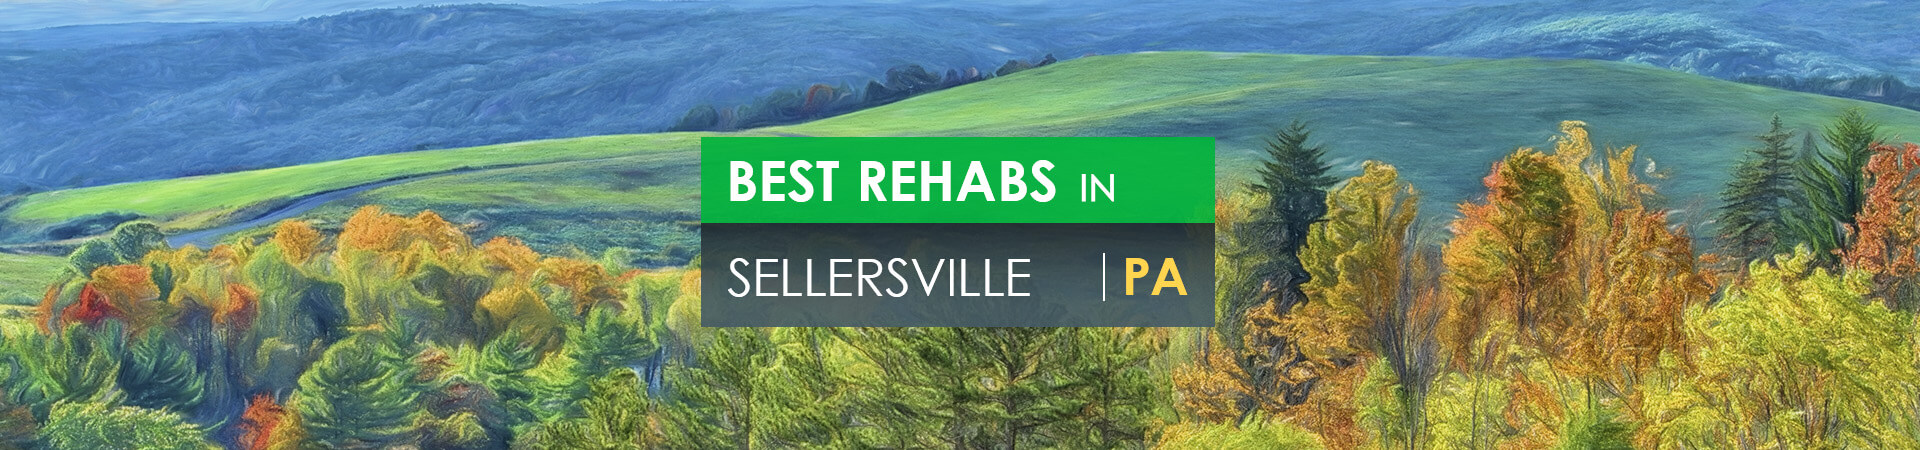 Best rehabs in Sellersville, PA